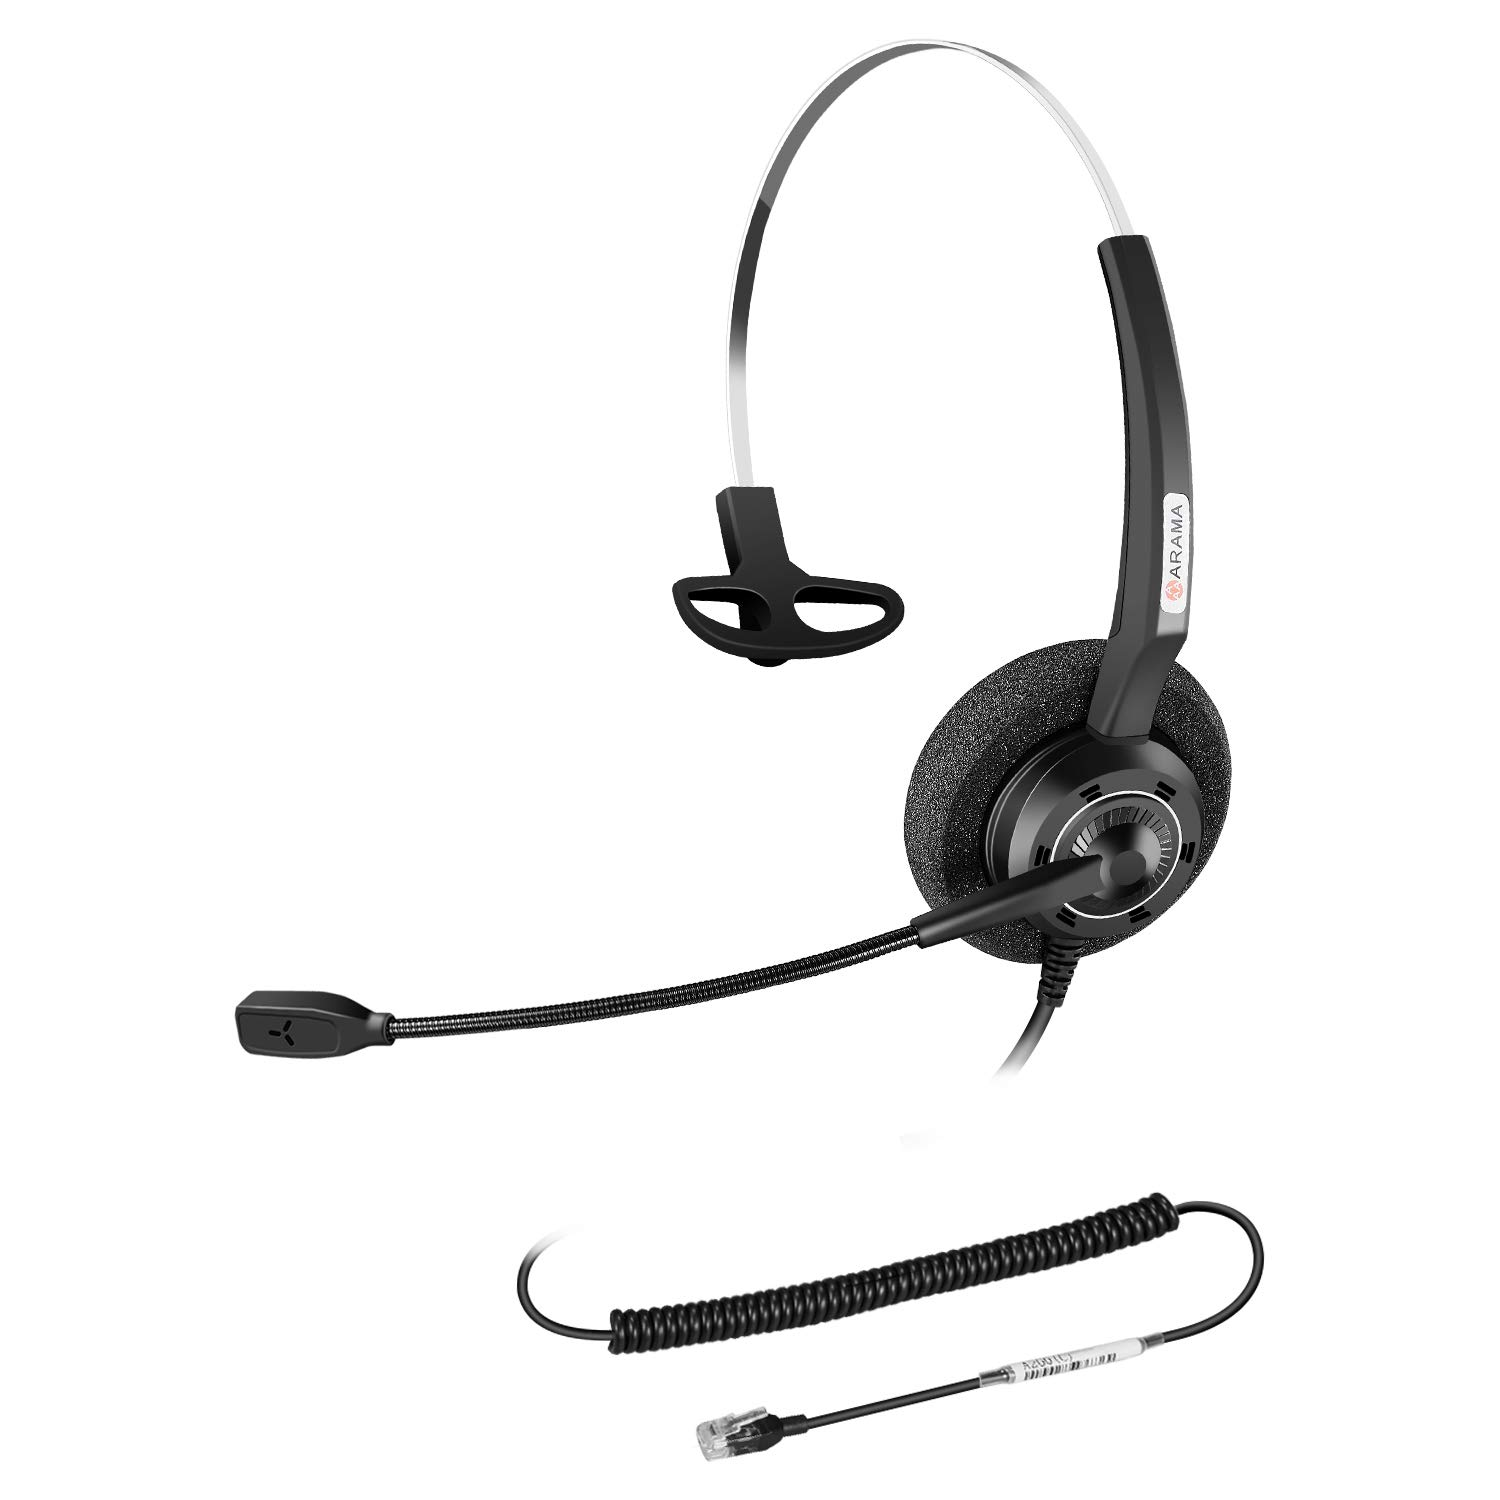 Office Phone Headset with Noise Canceling Mic for Yealink T19P T20P T21P T22P T26P T28P T23G T29G T32 T36 T38 T41P T41S T42S T46S T48S Avaya 1608 9608G 9611G 9640 Grandstream Phones by Arama